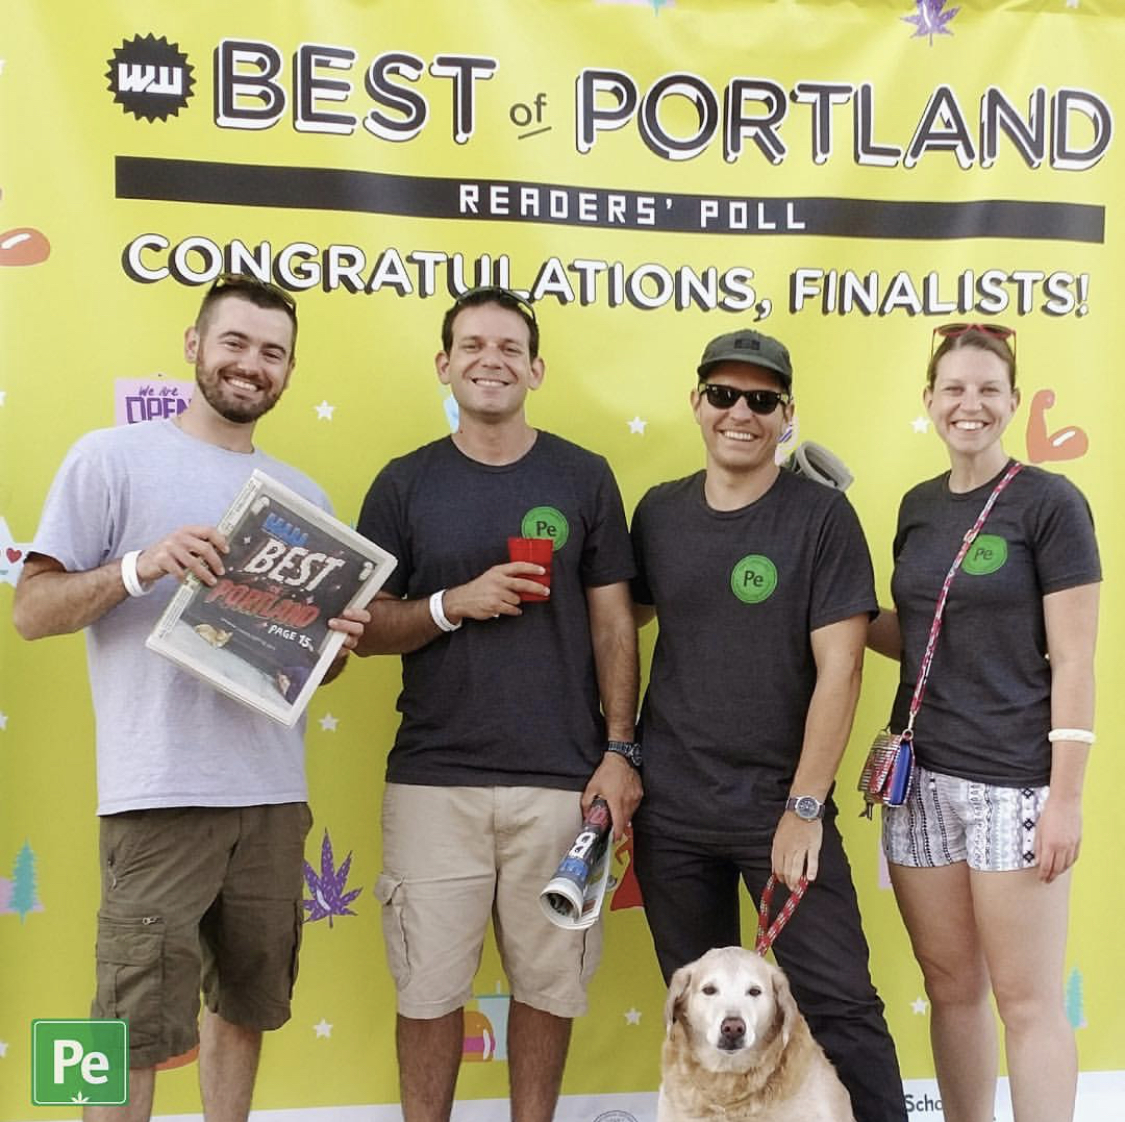 The Periodic edibles team takes 3rd place in the  Willamette Week's  Best of Portland Reader's Poll, 2017